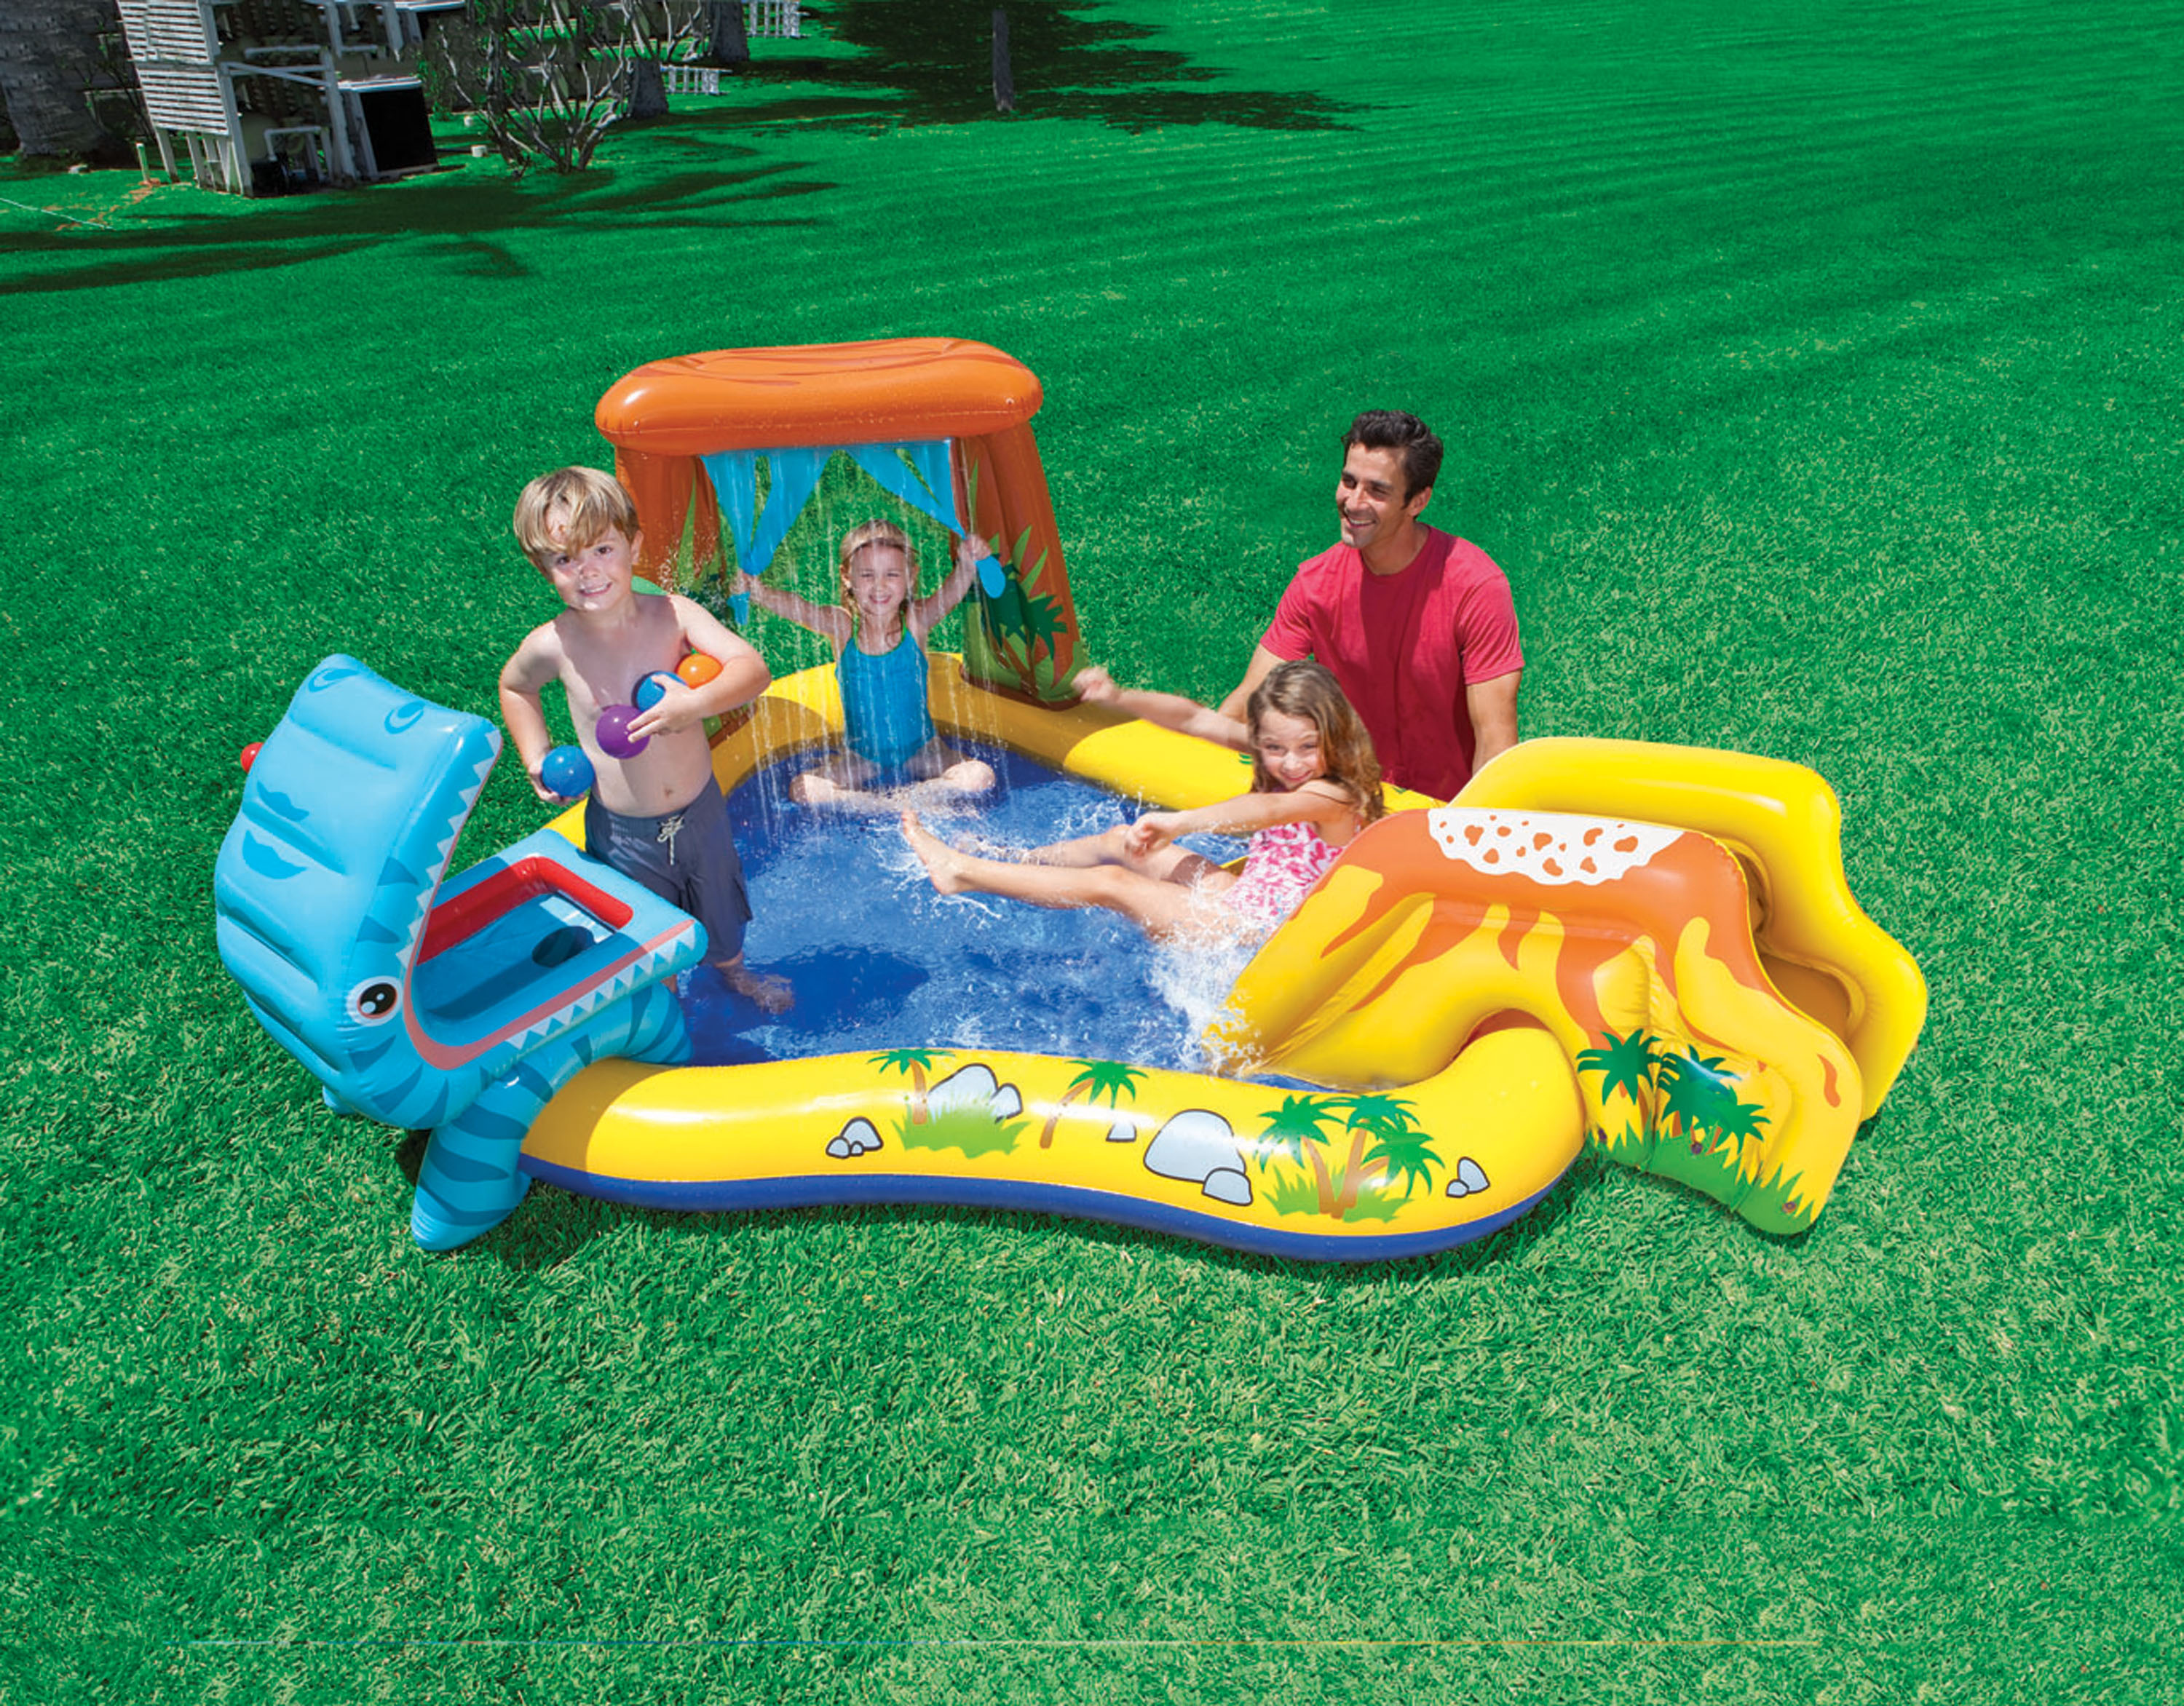 Details about Intex Dinosaur Play Center Inflatable Kids Set & Swimming  Pool 57444EP